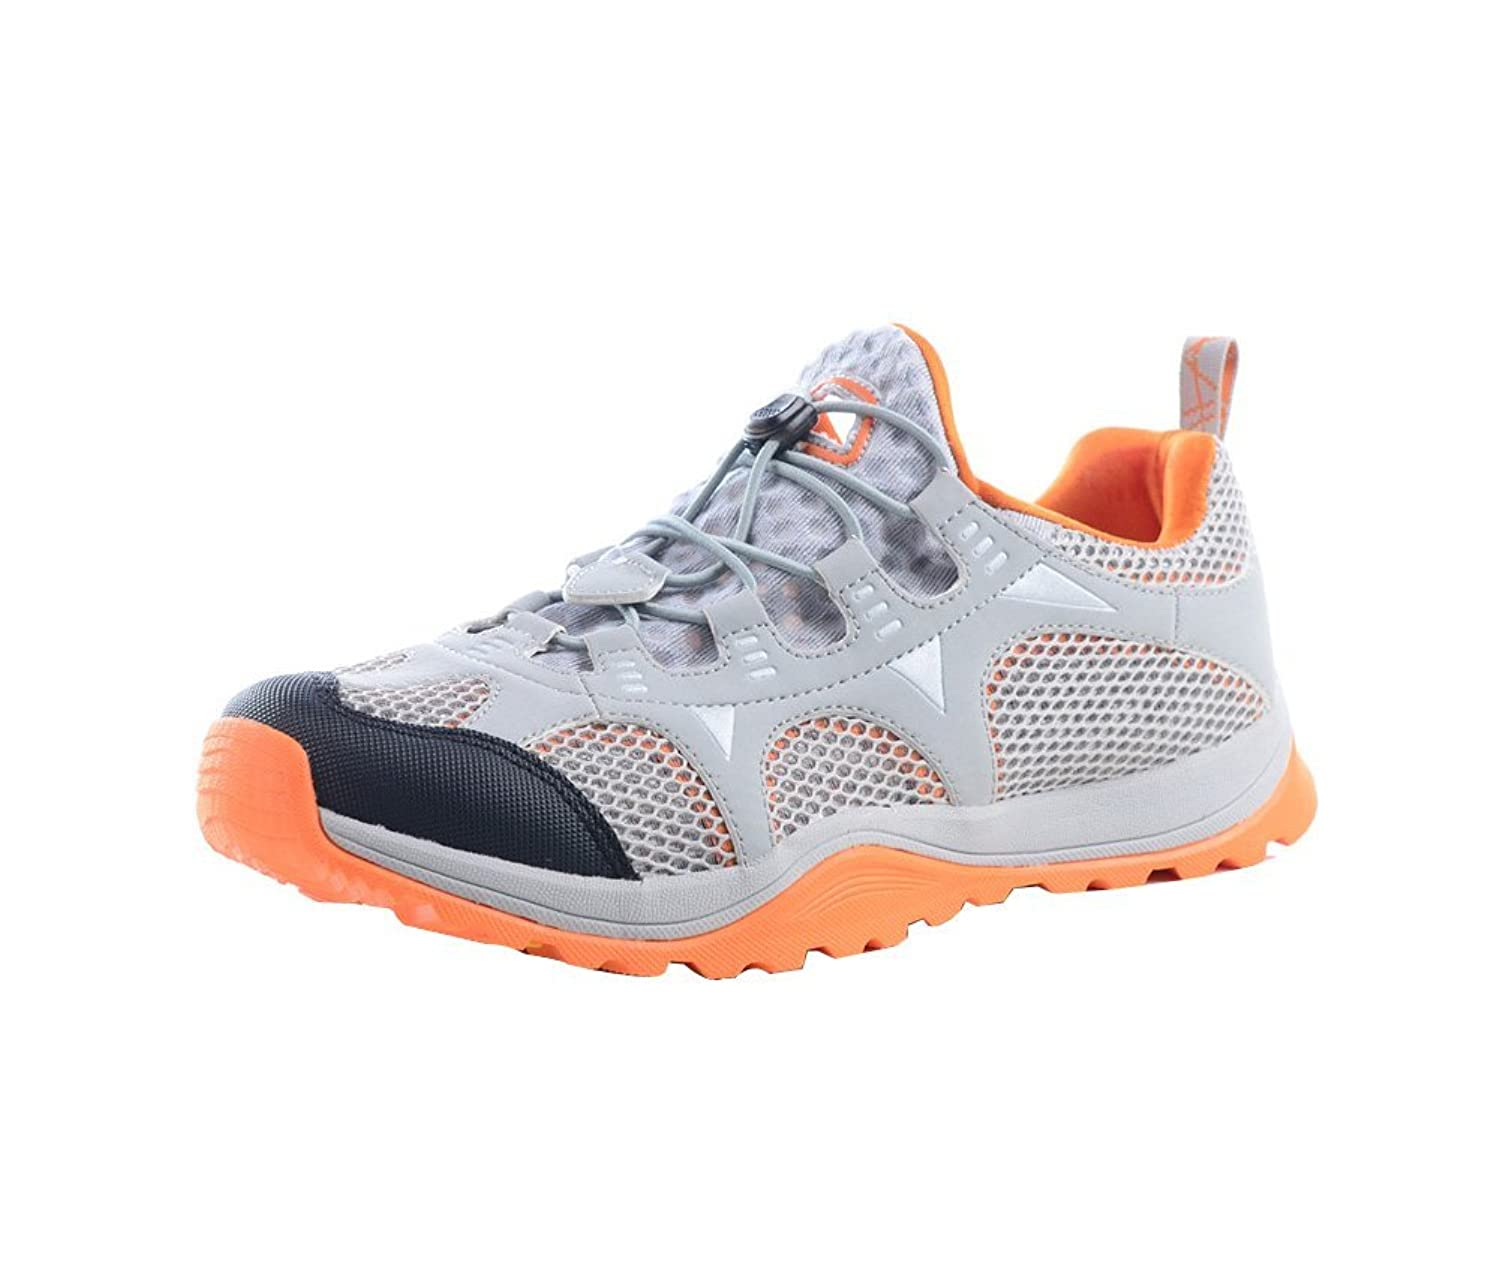 Chicside Men's Nubuck Casual Solid Hiking Shoes